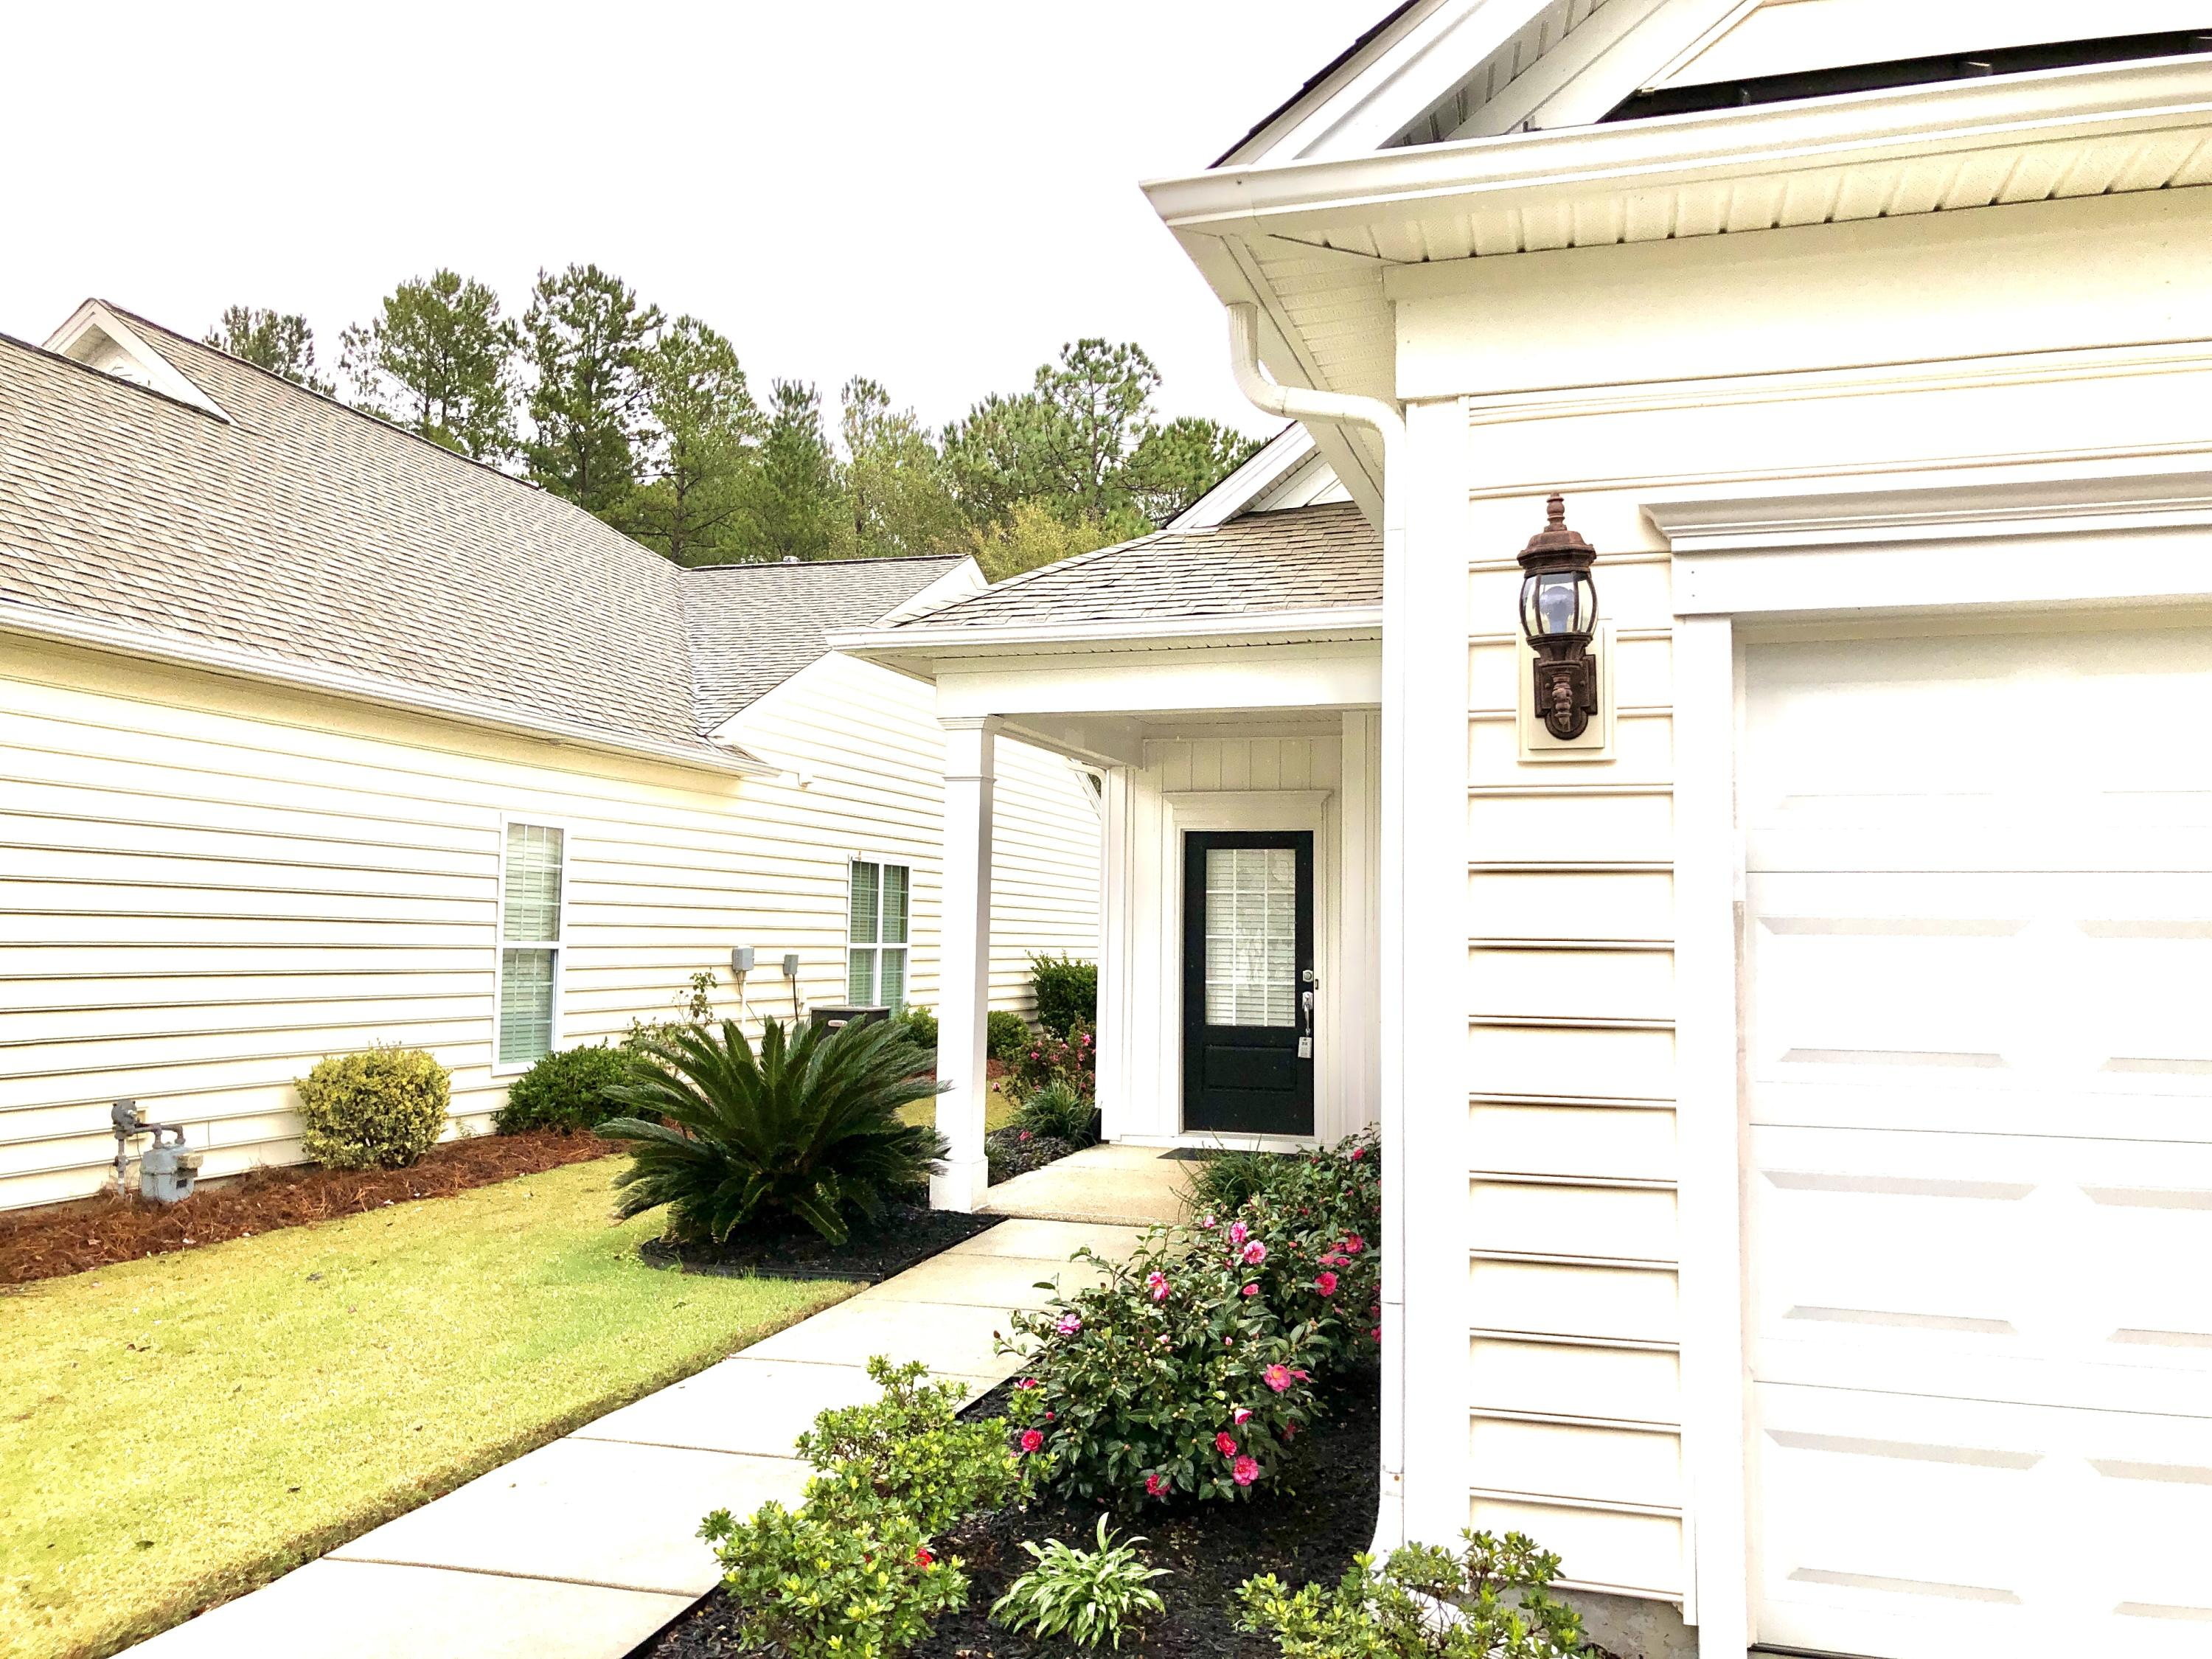 167 Sea Lavender Lane Summerville, Sc 29486